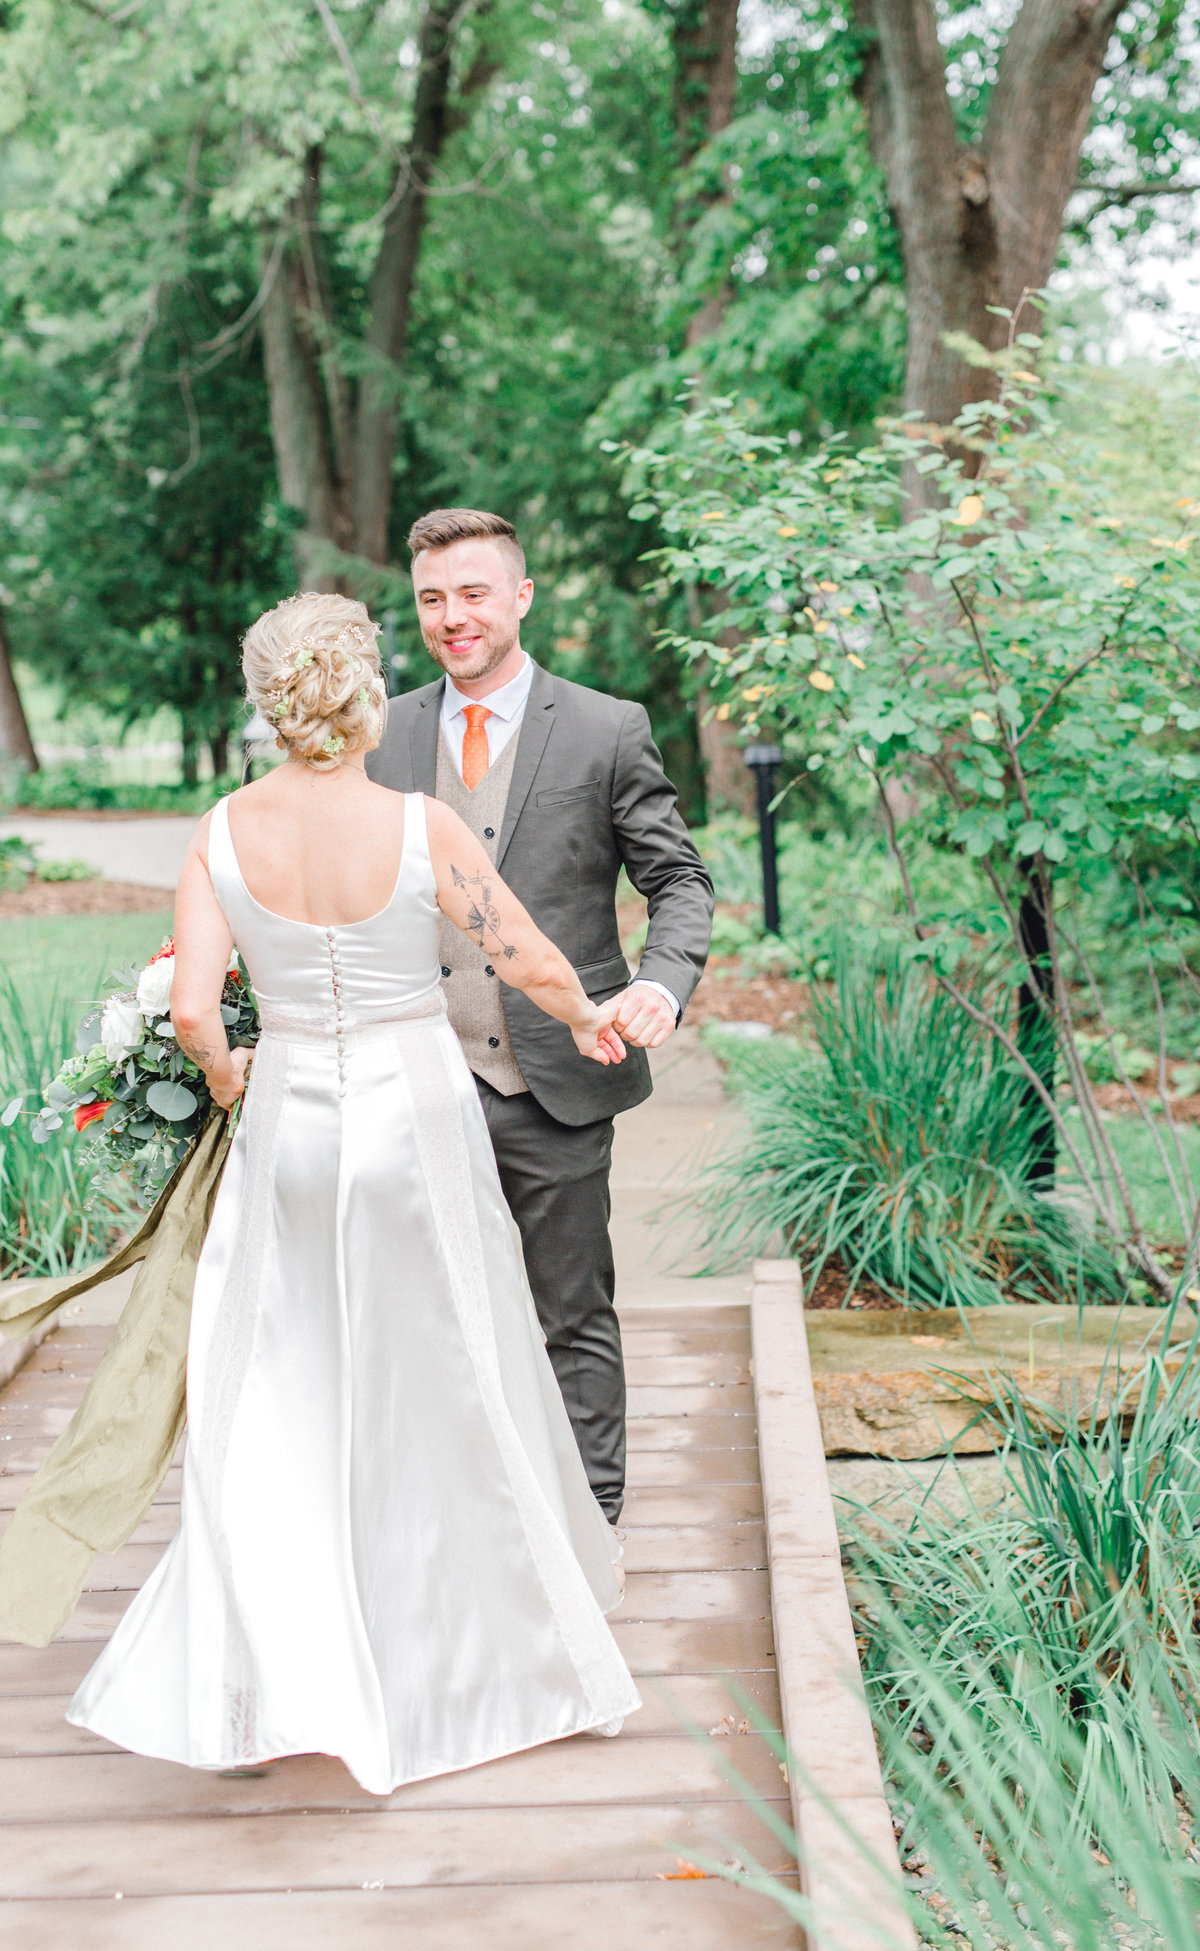 Ned-Ashton-House-Wedding-Ellen+Mack-3752